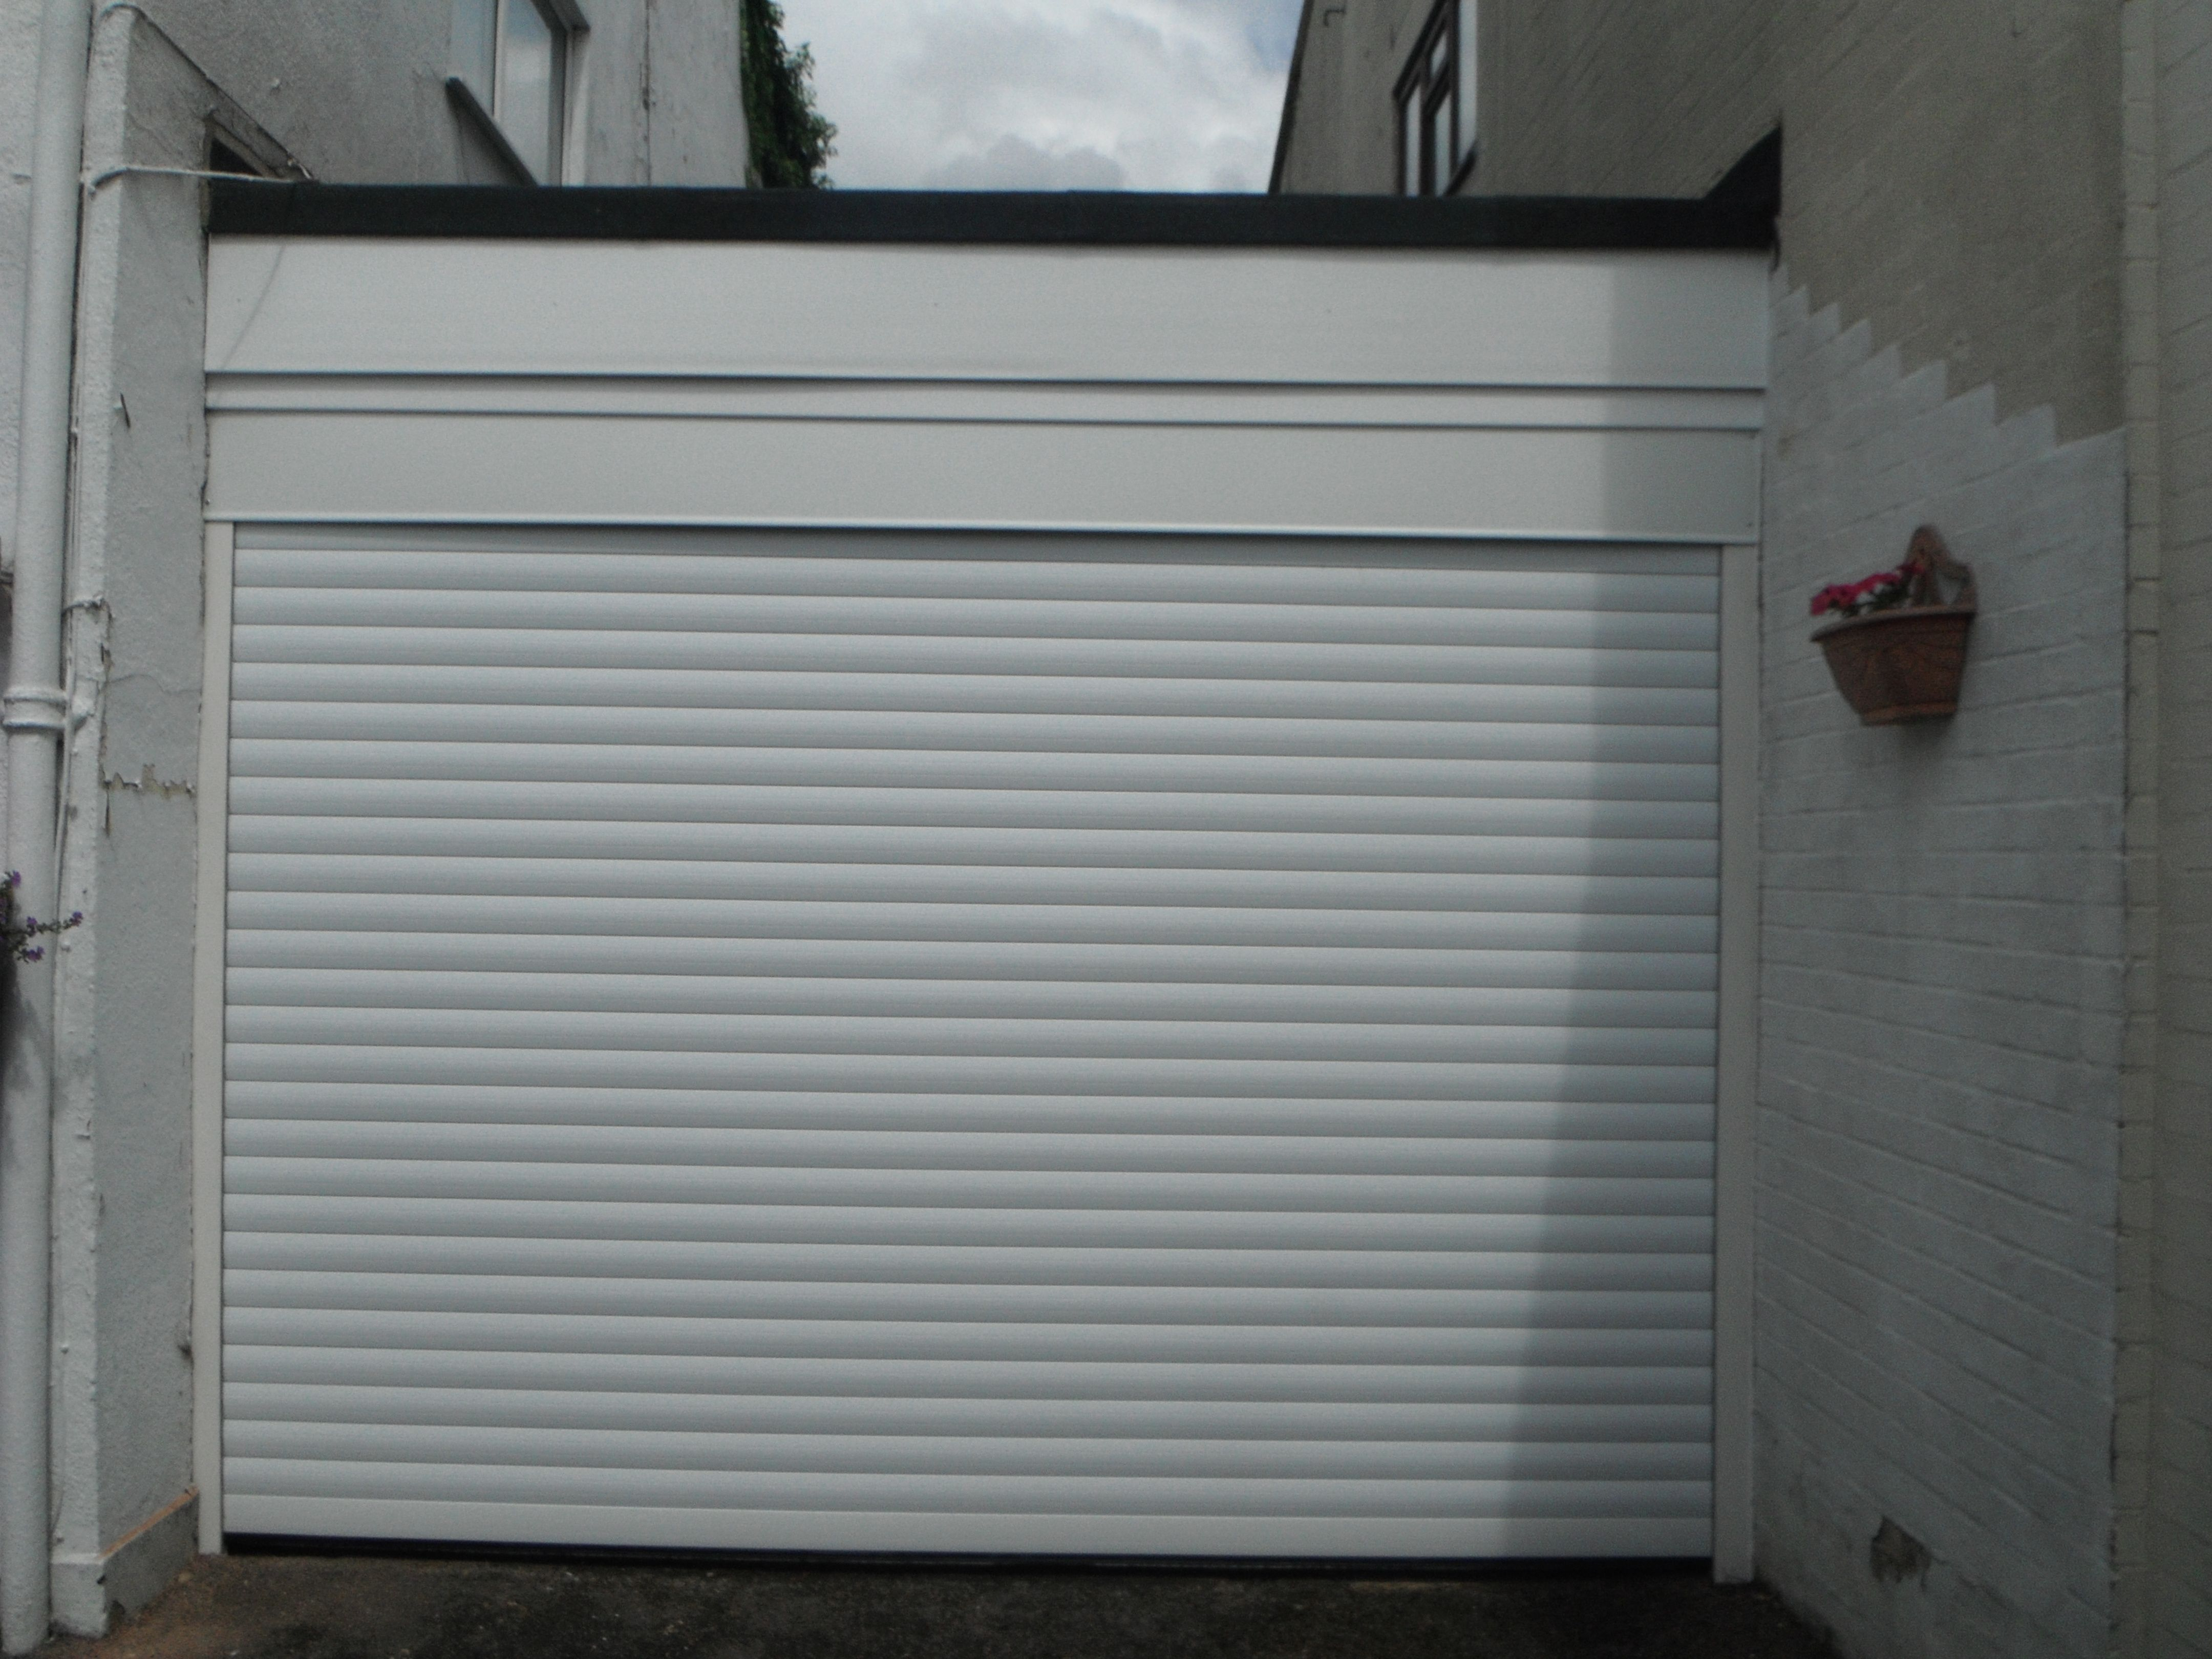 Seceuroglide insulated sectional garage door georgian cassette - Sws Seceuroglide Compact Garage Door In Fir Green This Door Has Been Developed Especially For Garages With Severely Limited Space Above The Openi U2026